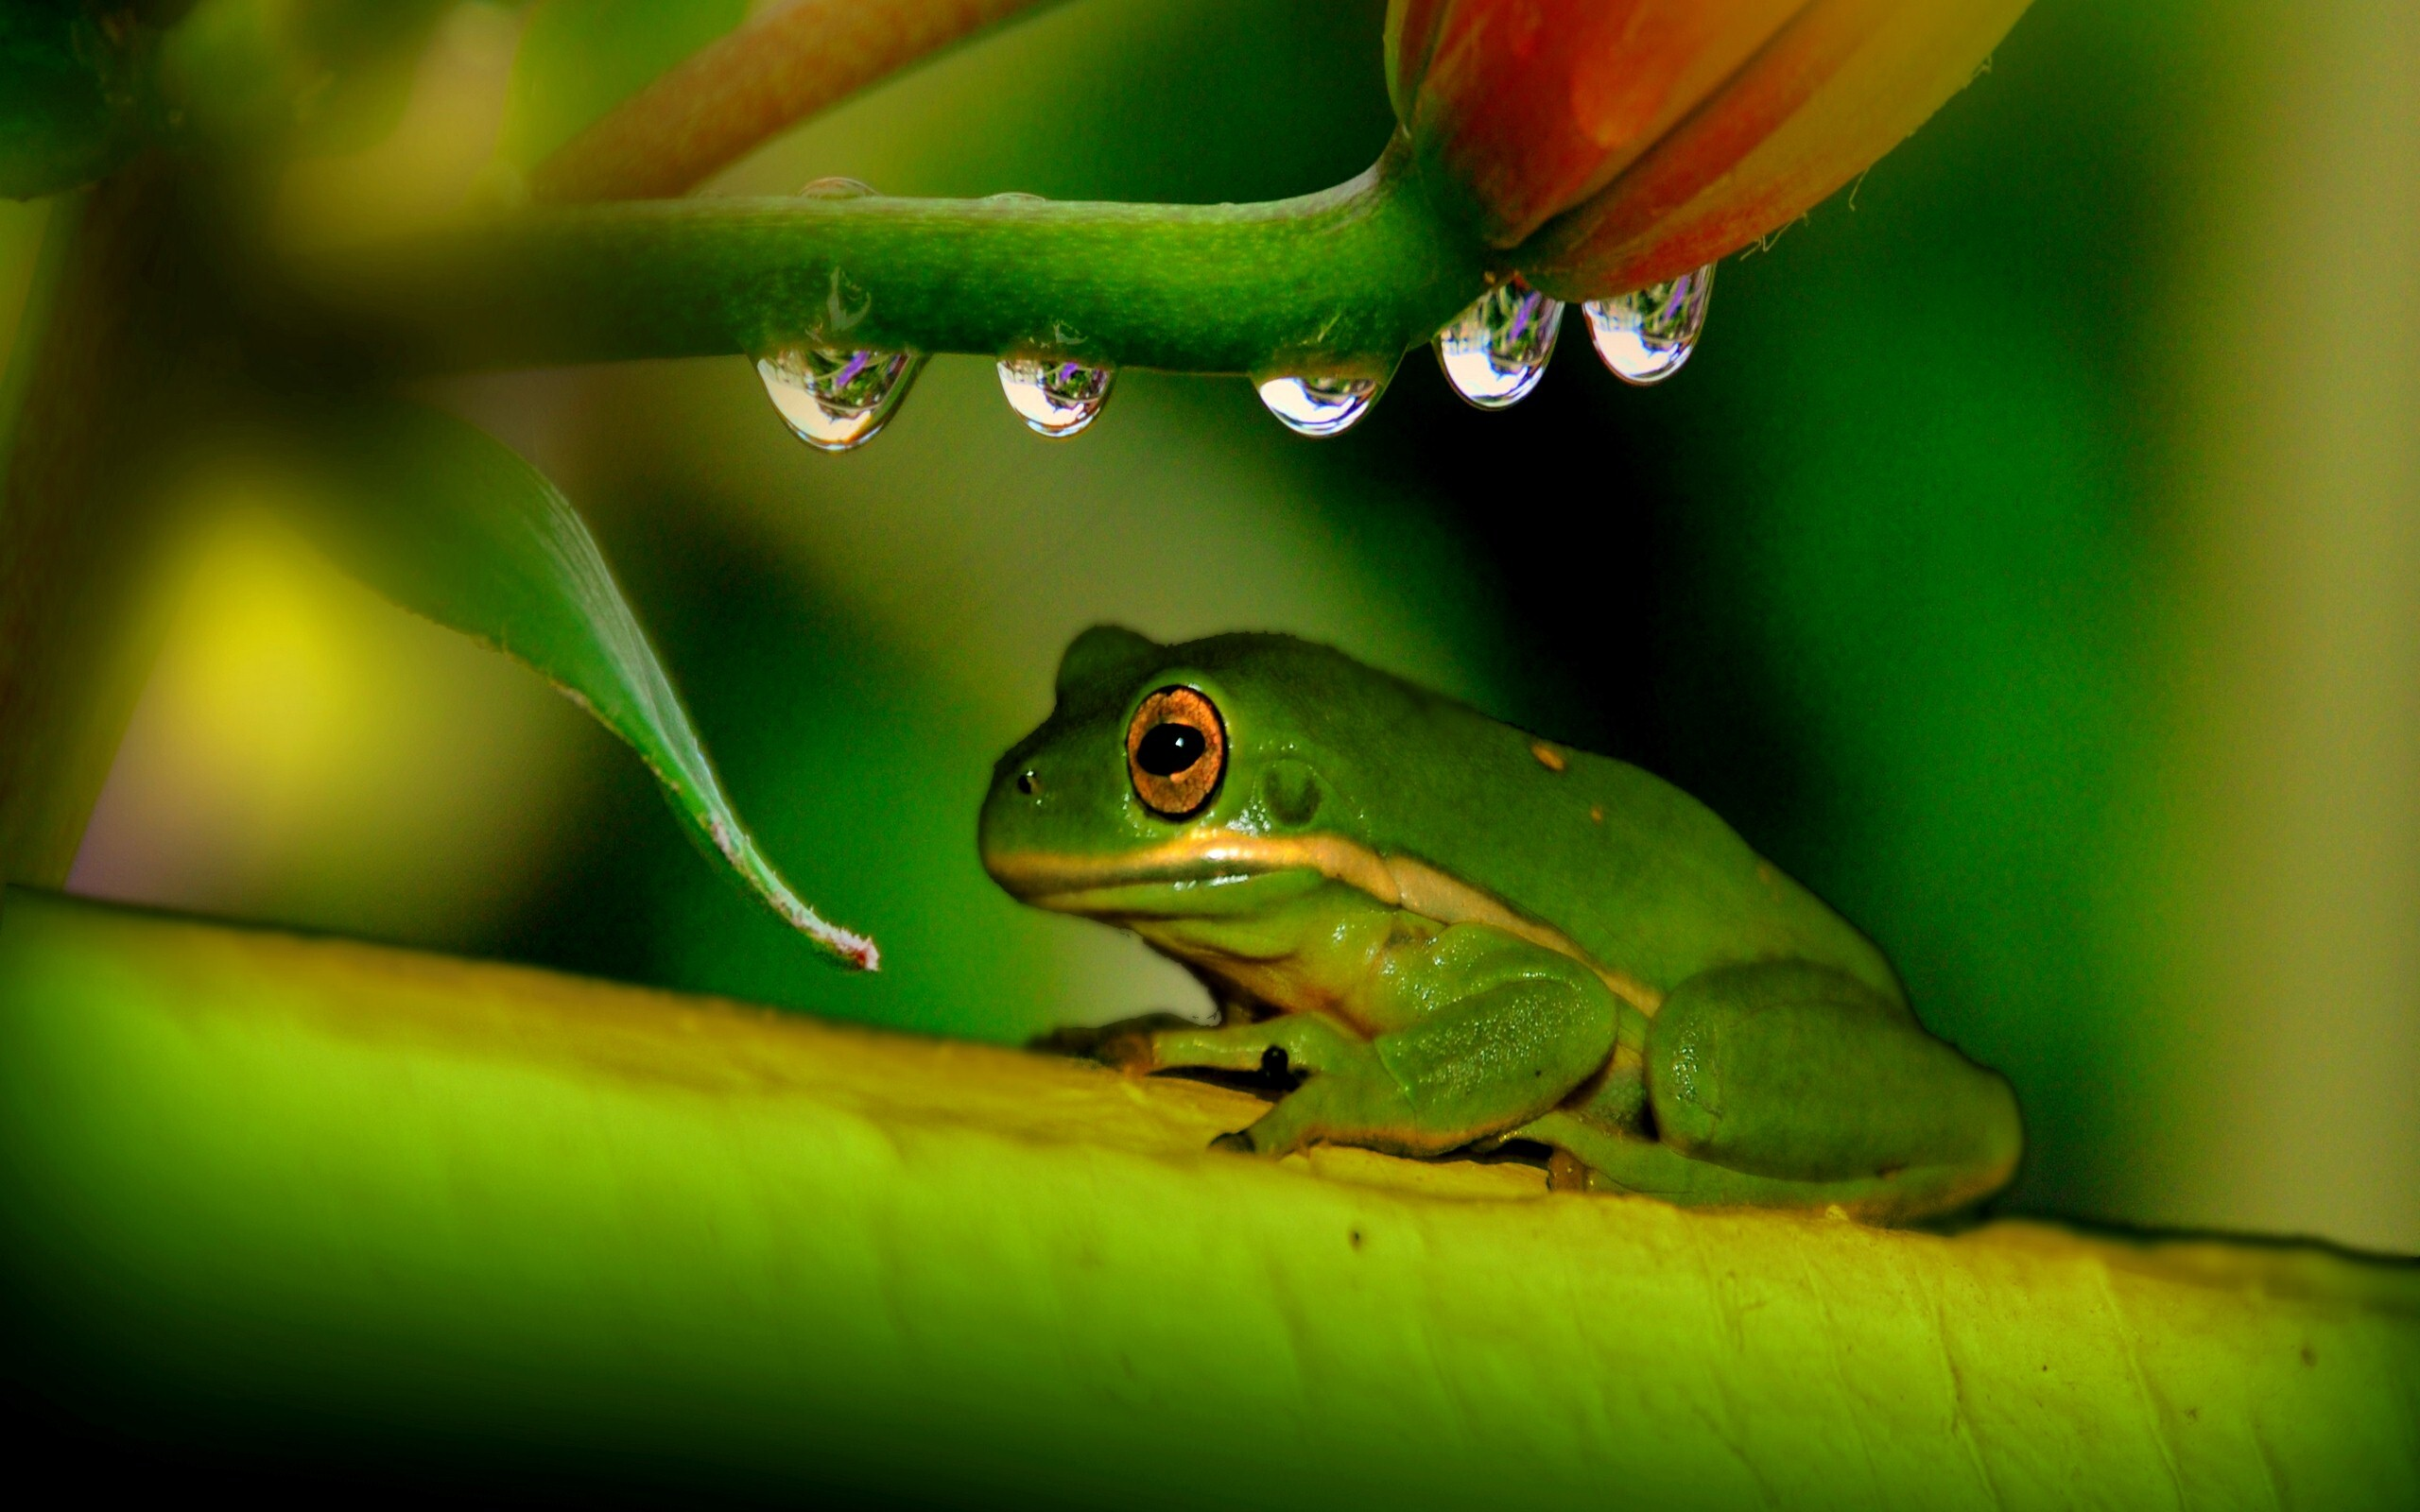 Green frog on leave photo hd wallpapers - Frog cartoon wallpaper ...